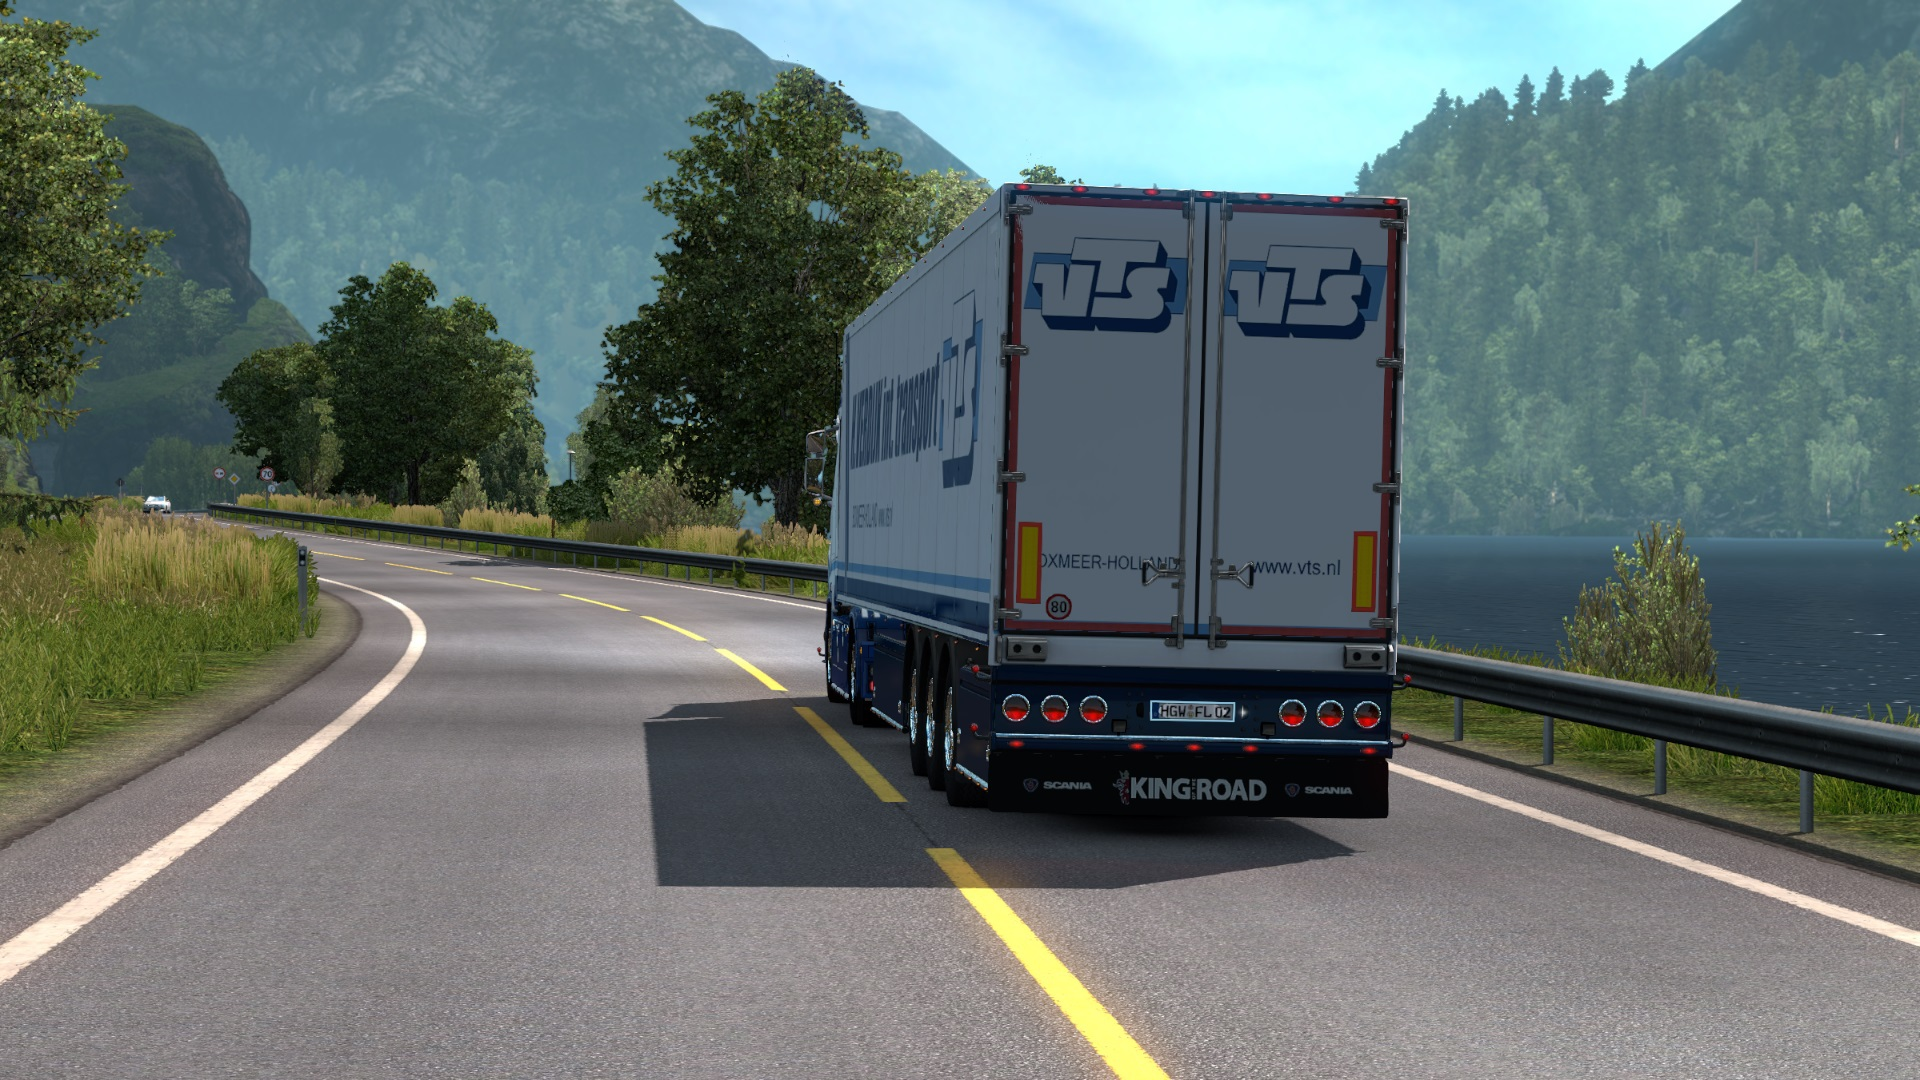 Screenshots - Seite 28 Ets2_0058y7jqy